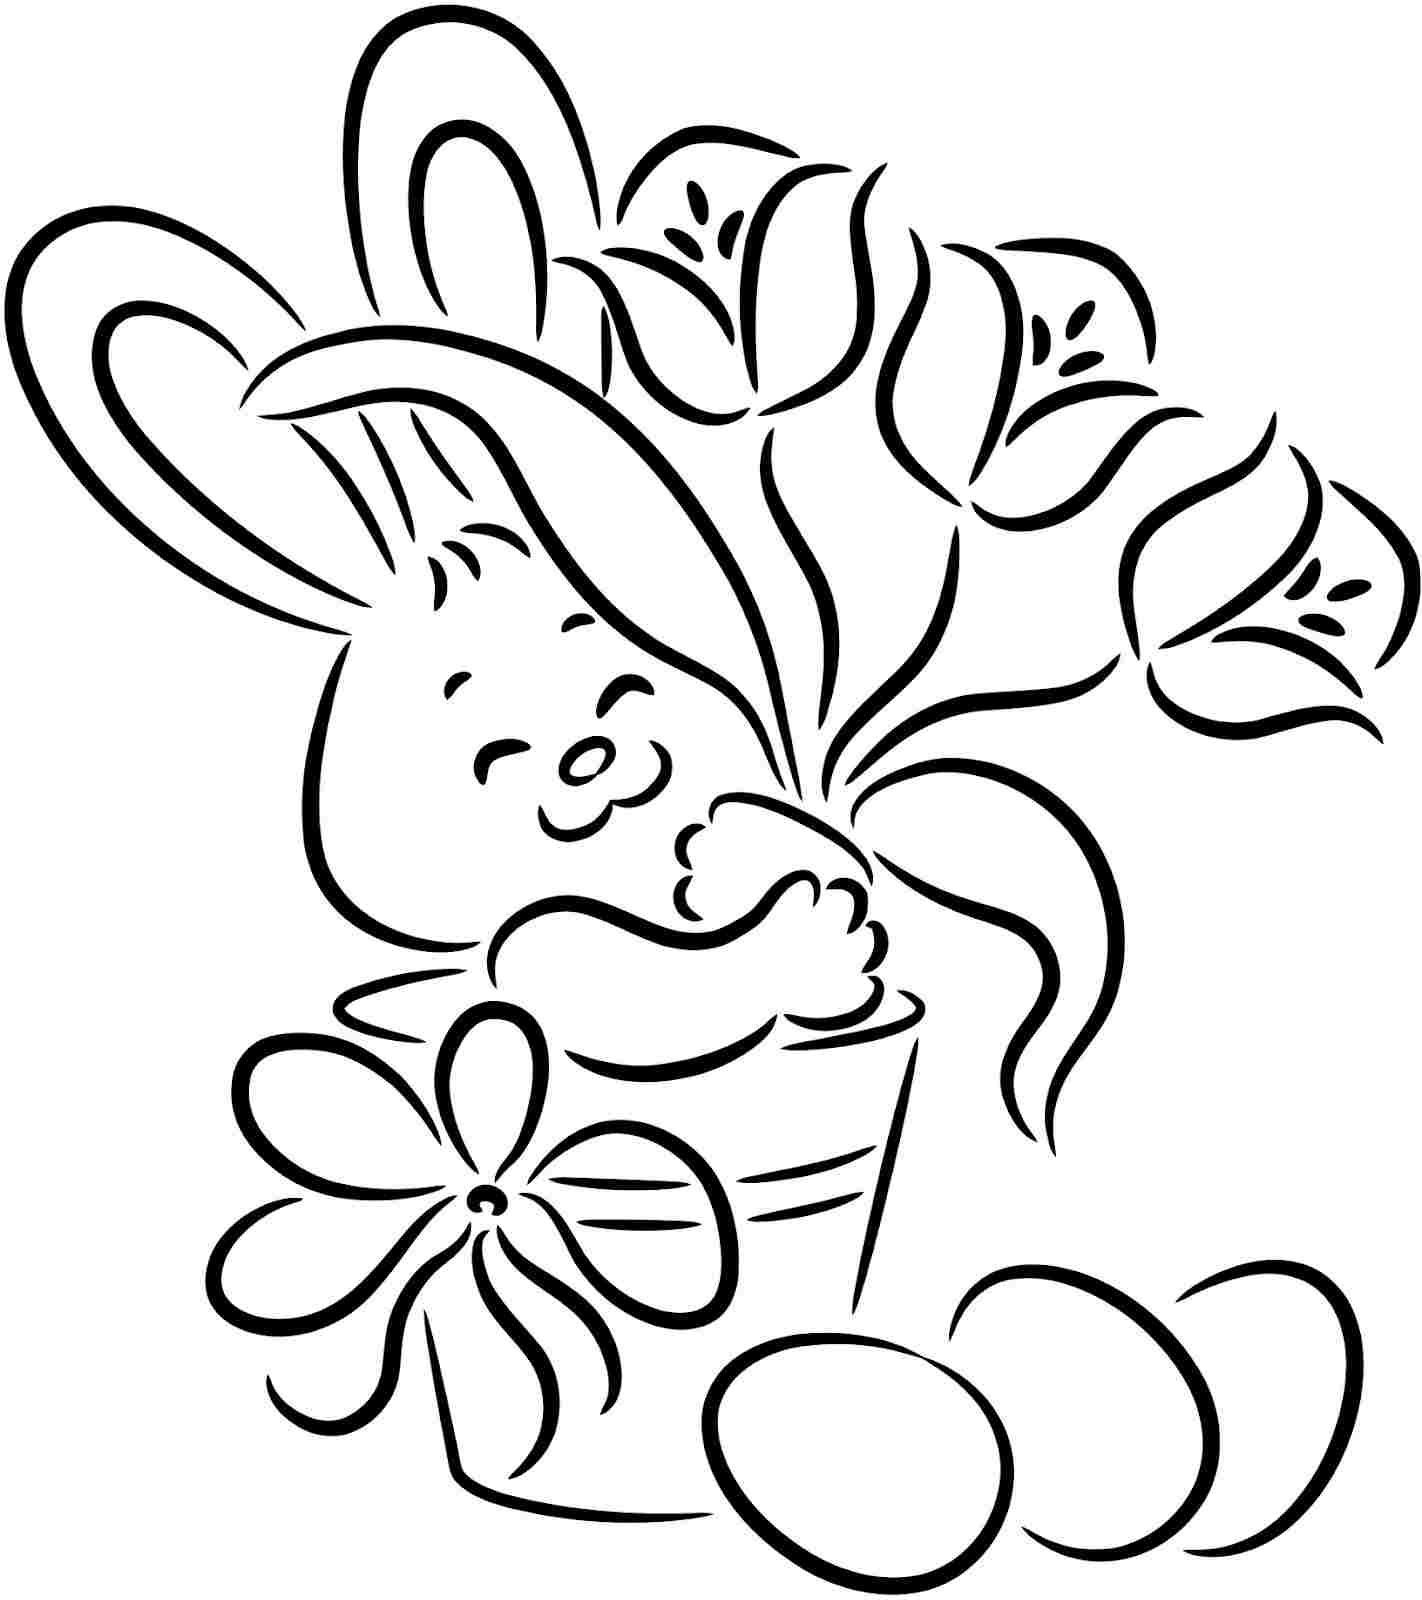 Easy Bunny Drawings For Kids Easter